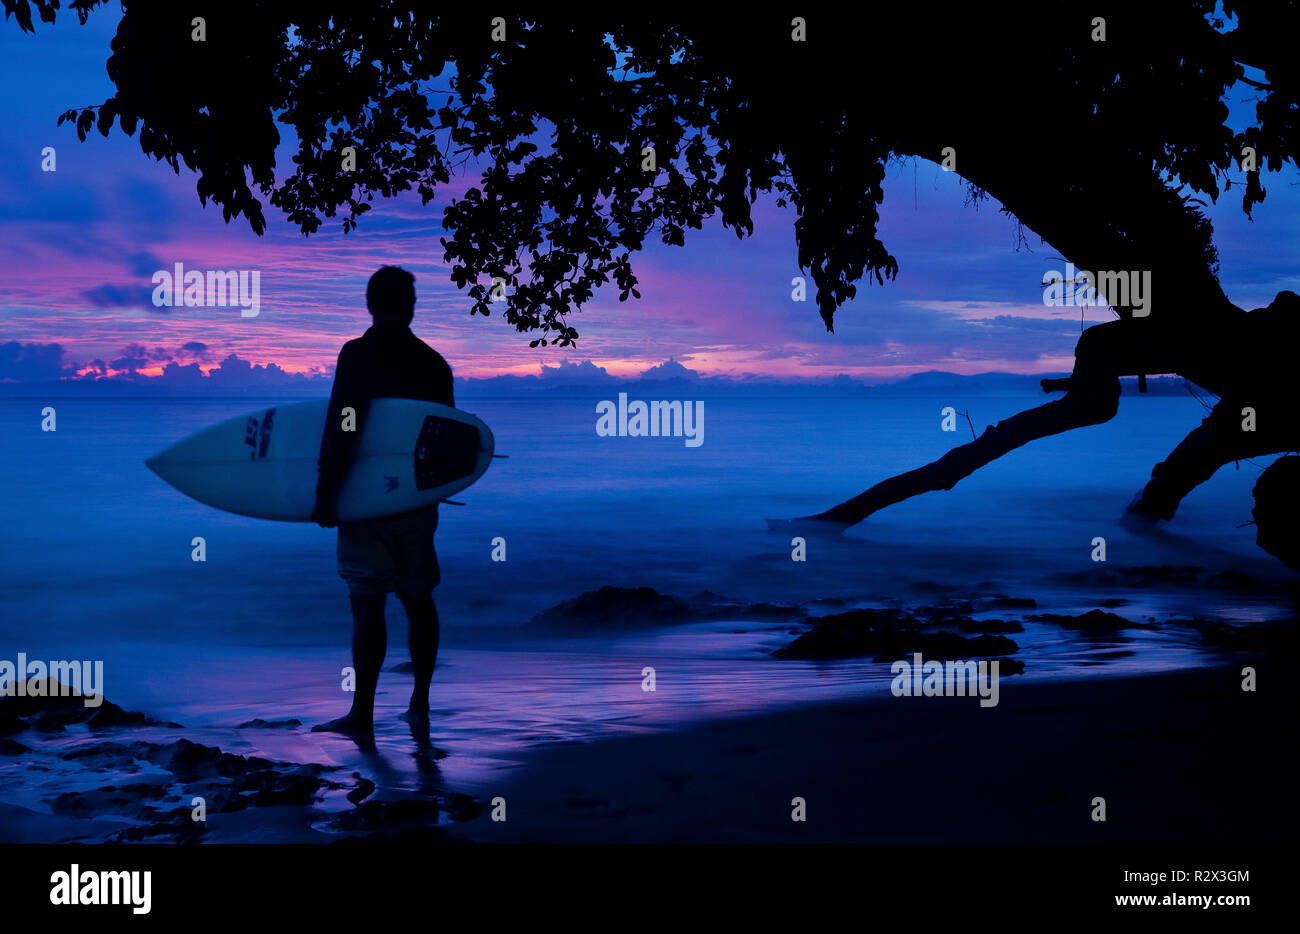 Surfer silhouettes at sunset, South Siberut, Indonesia. - Stock Image